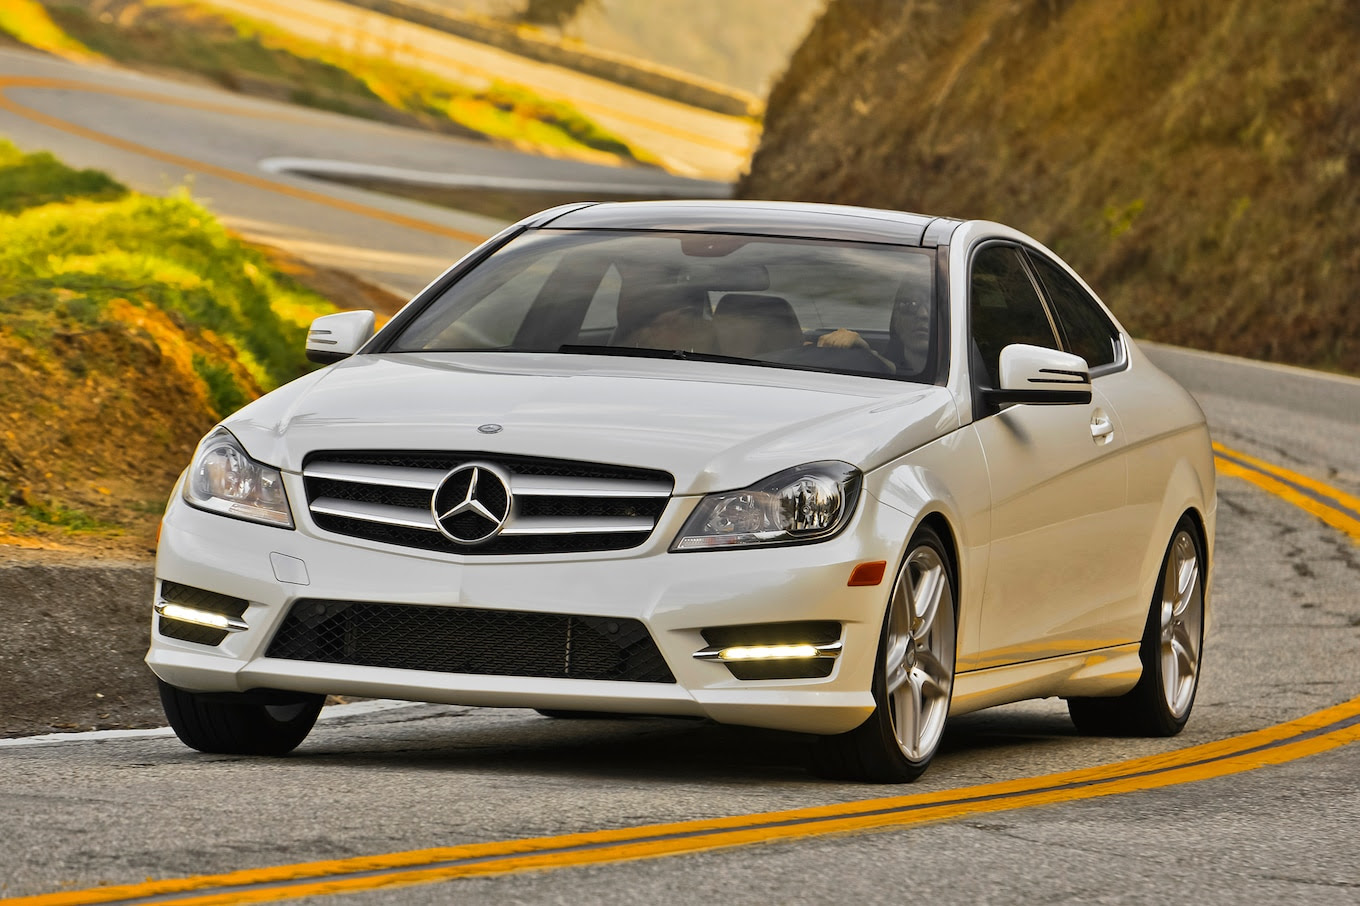 2013 MercedesBenz CClass Reviews and Rating  Motor Trend